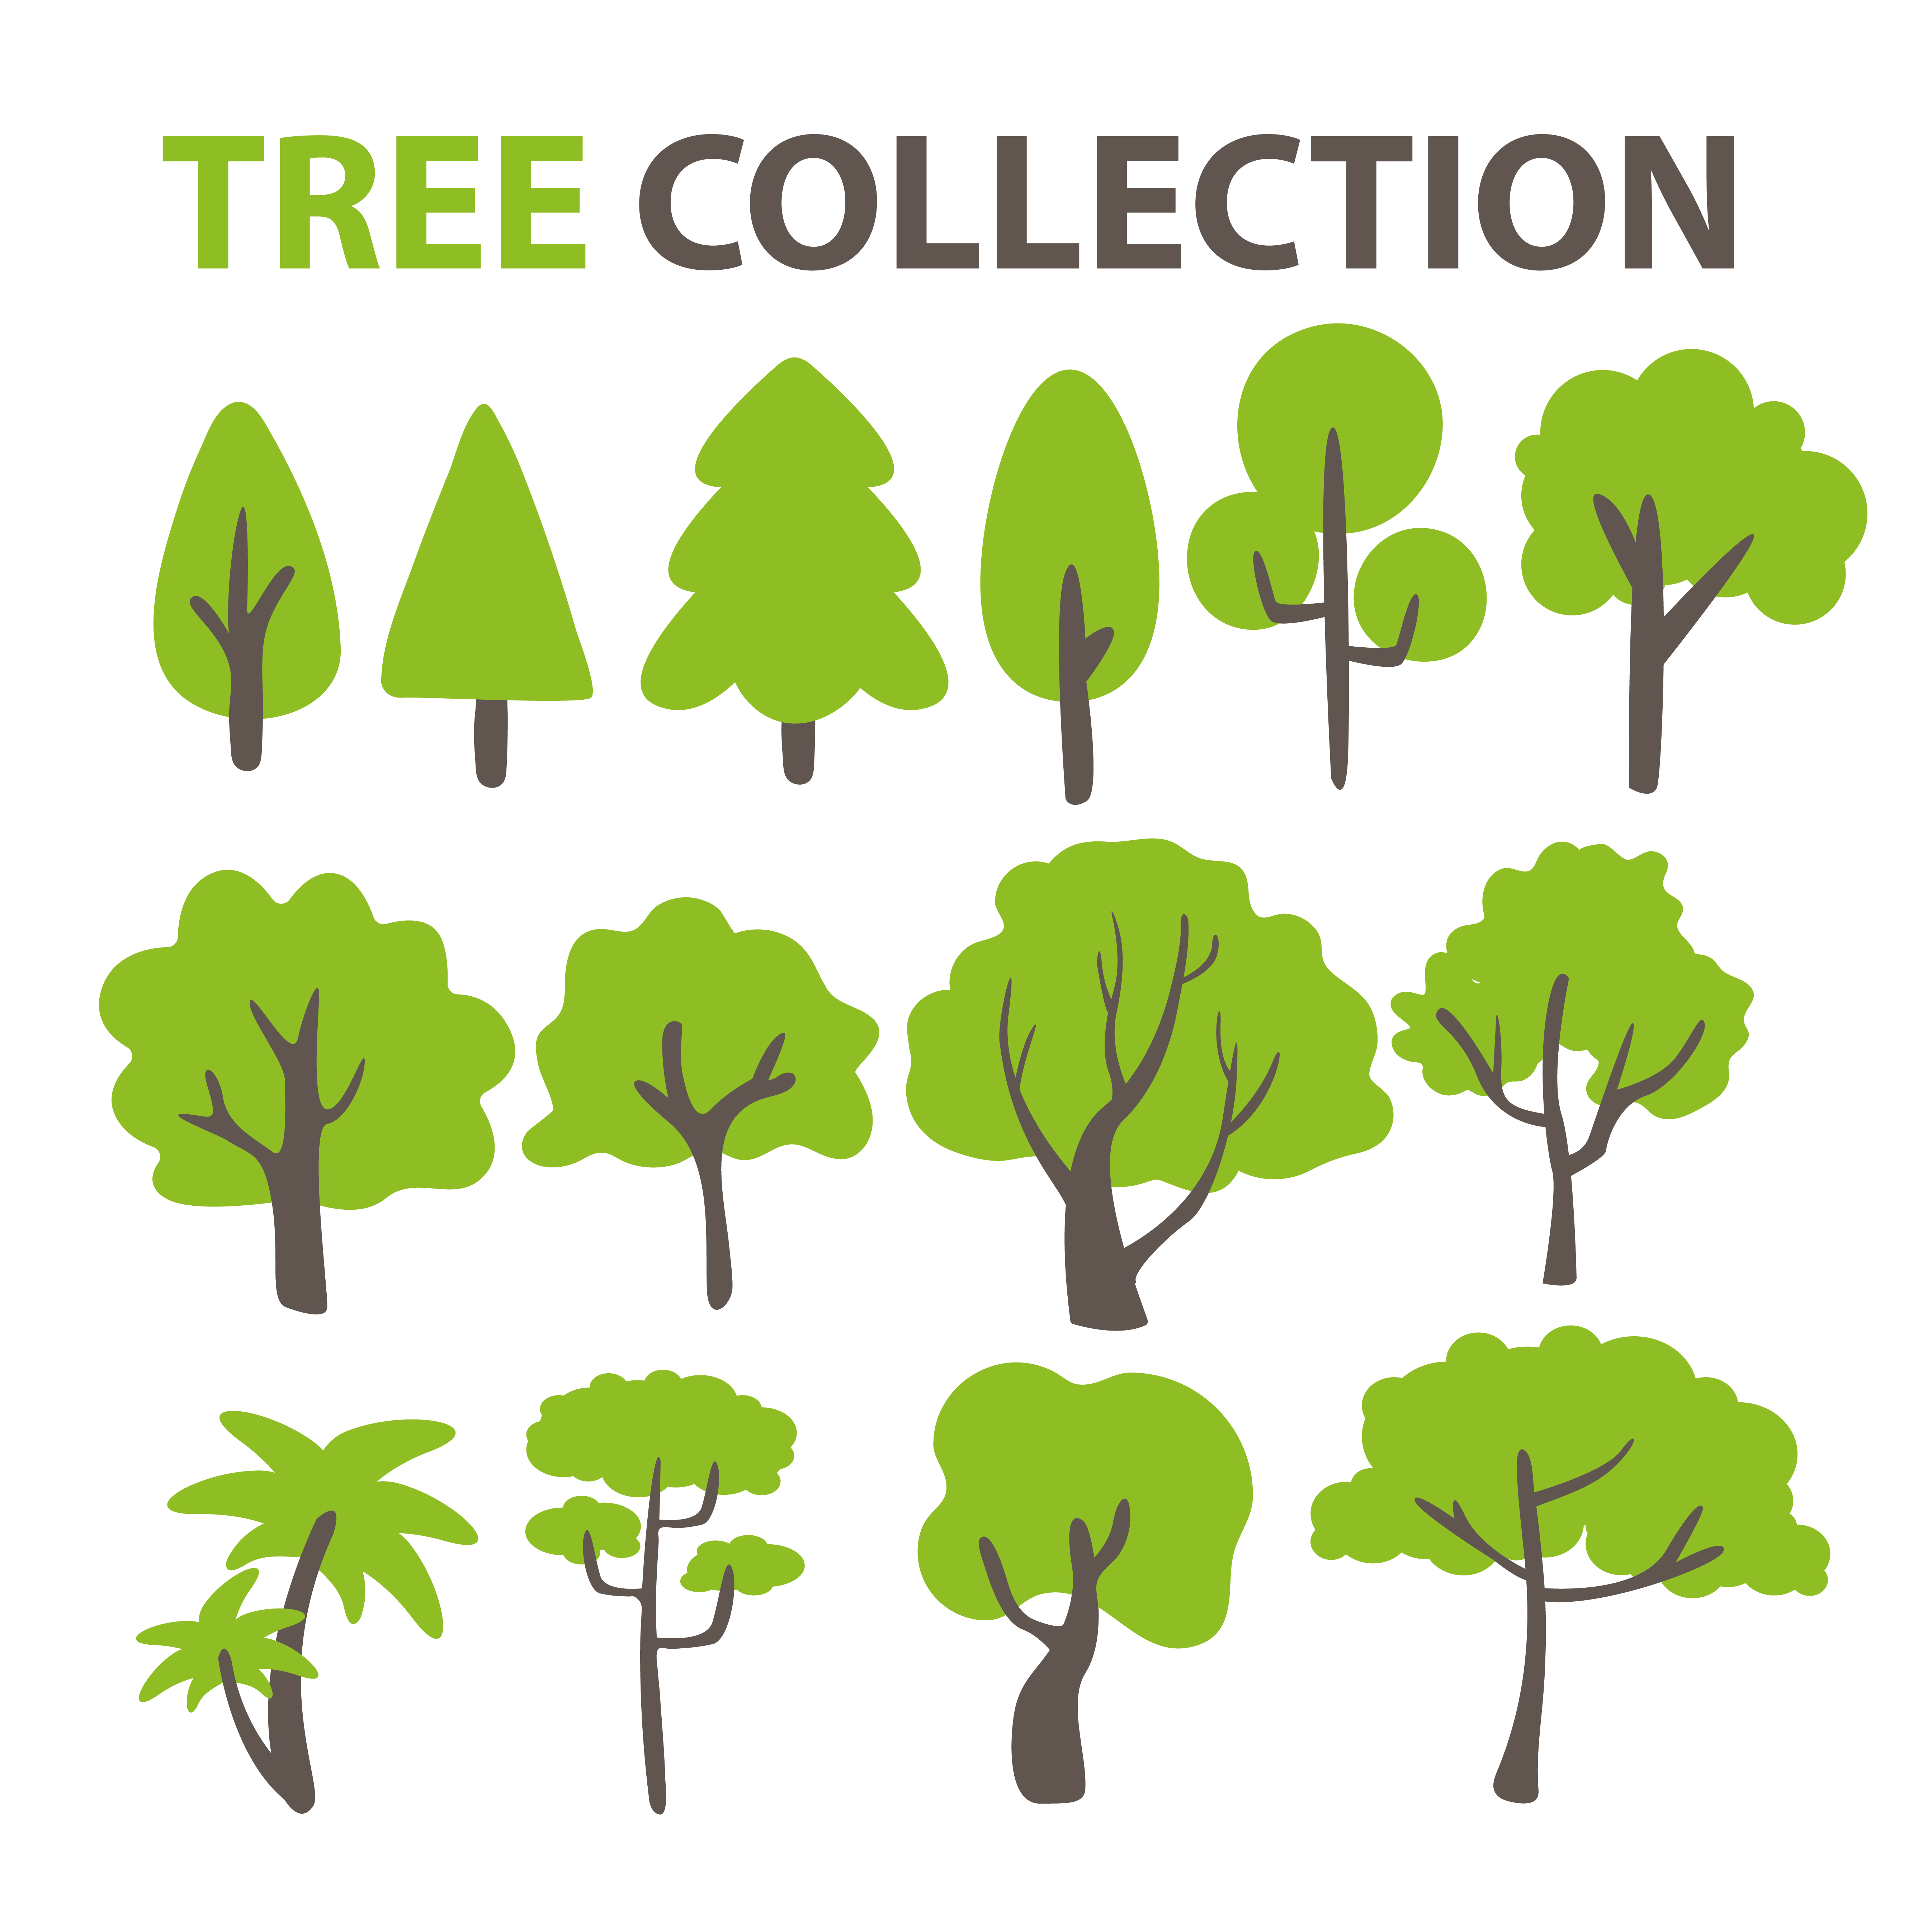 Flat Tree Collection For Decorating The Background Of A Cartoon Tree Download Free Vectors Clipart Graphics Vector Art When designing a new logo you can be inspired by the visual logos found here. vecteezy